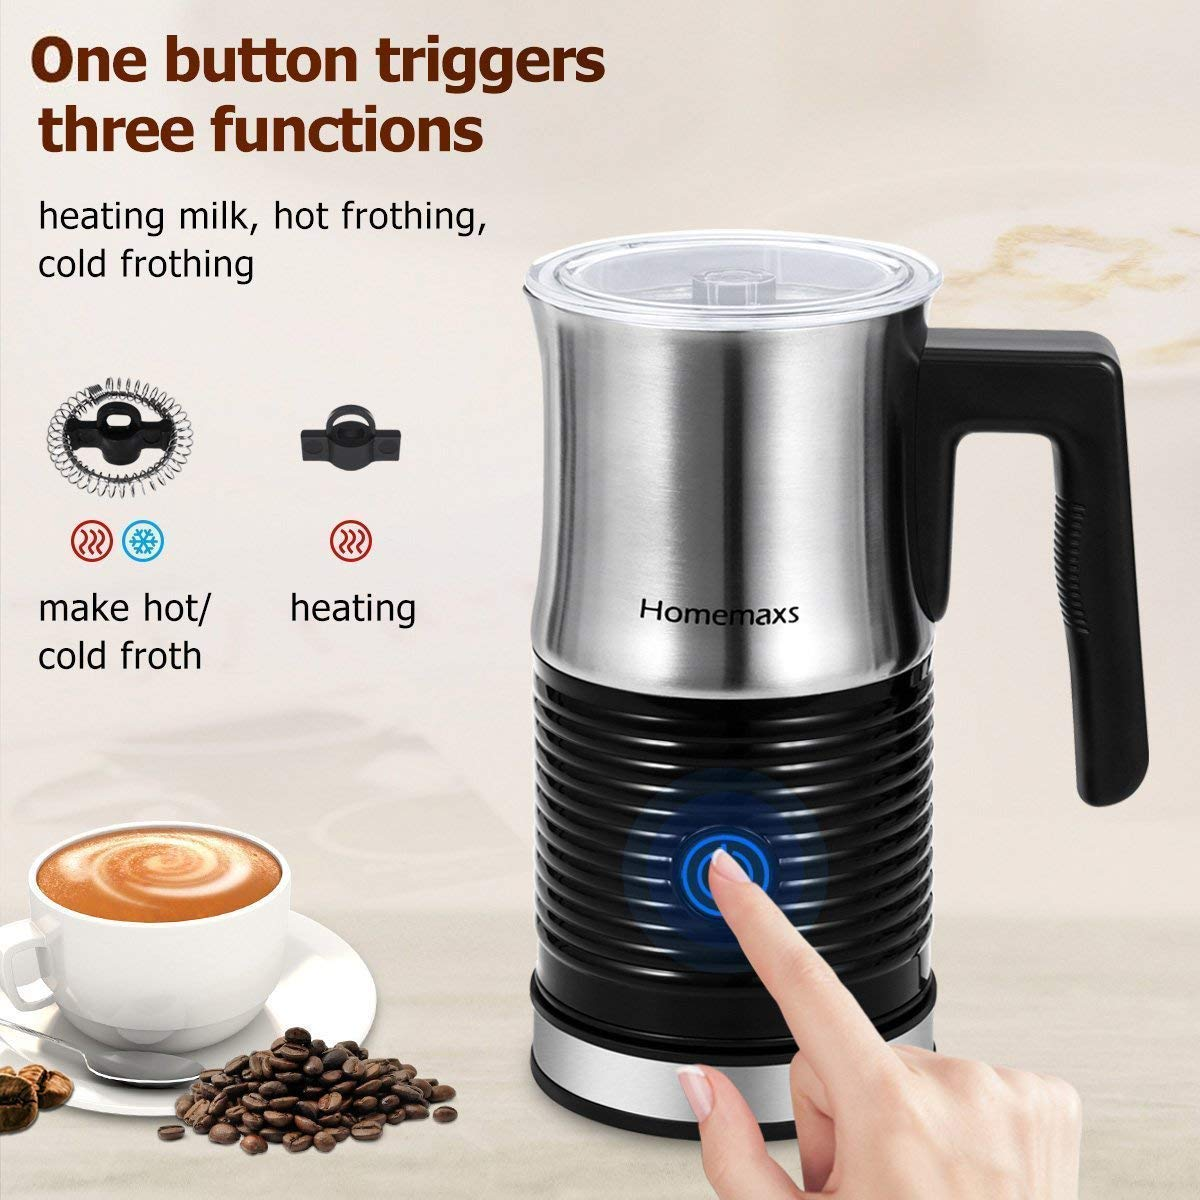 Milk Frother, Homemaxs Electric Milk Frother & Warmer with Hot or Cold Function, Anti-hot Base & Non-Stick Interior Perfect Foam for Coffee, Hot Chocolate, Cappuccino(Black) by Homemaxs (Image #2)